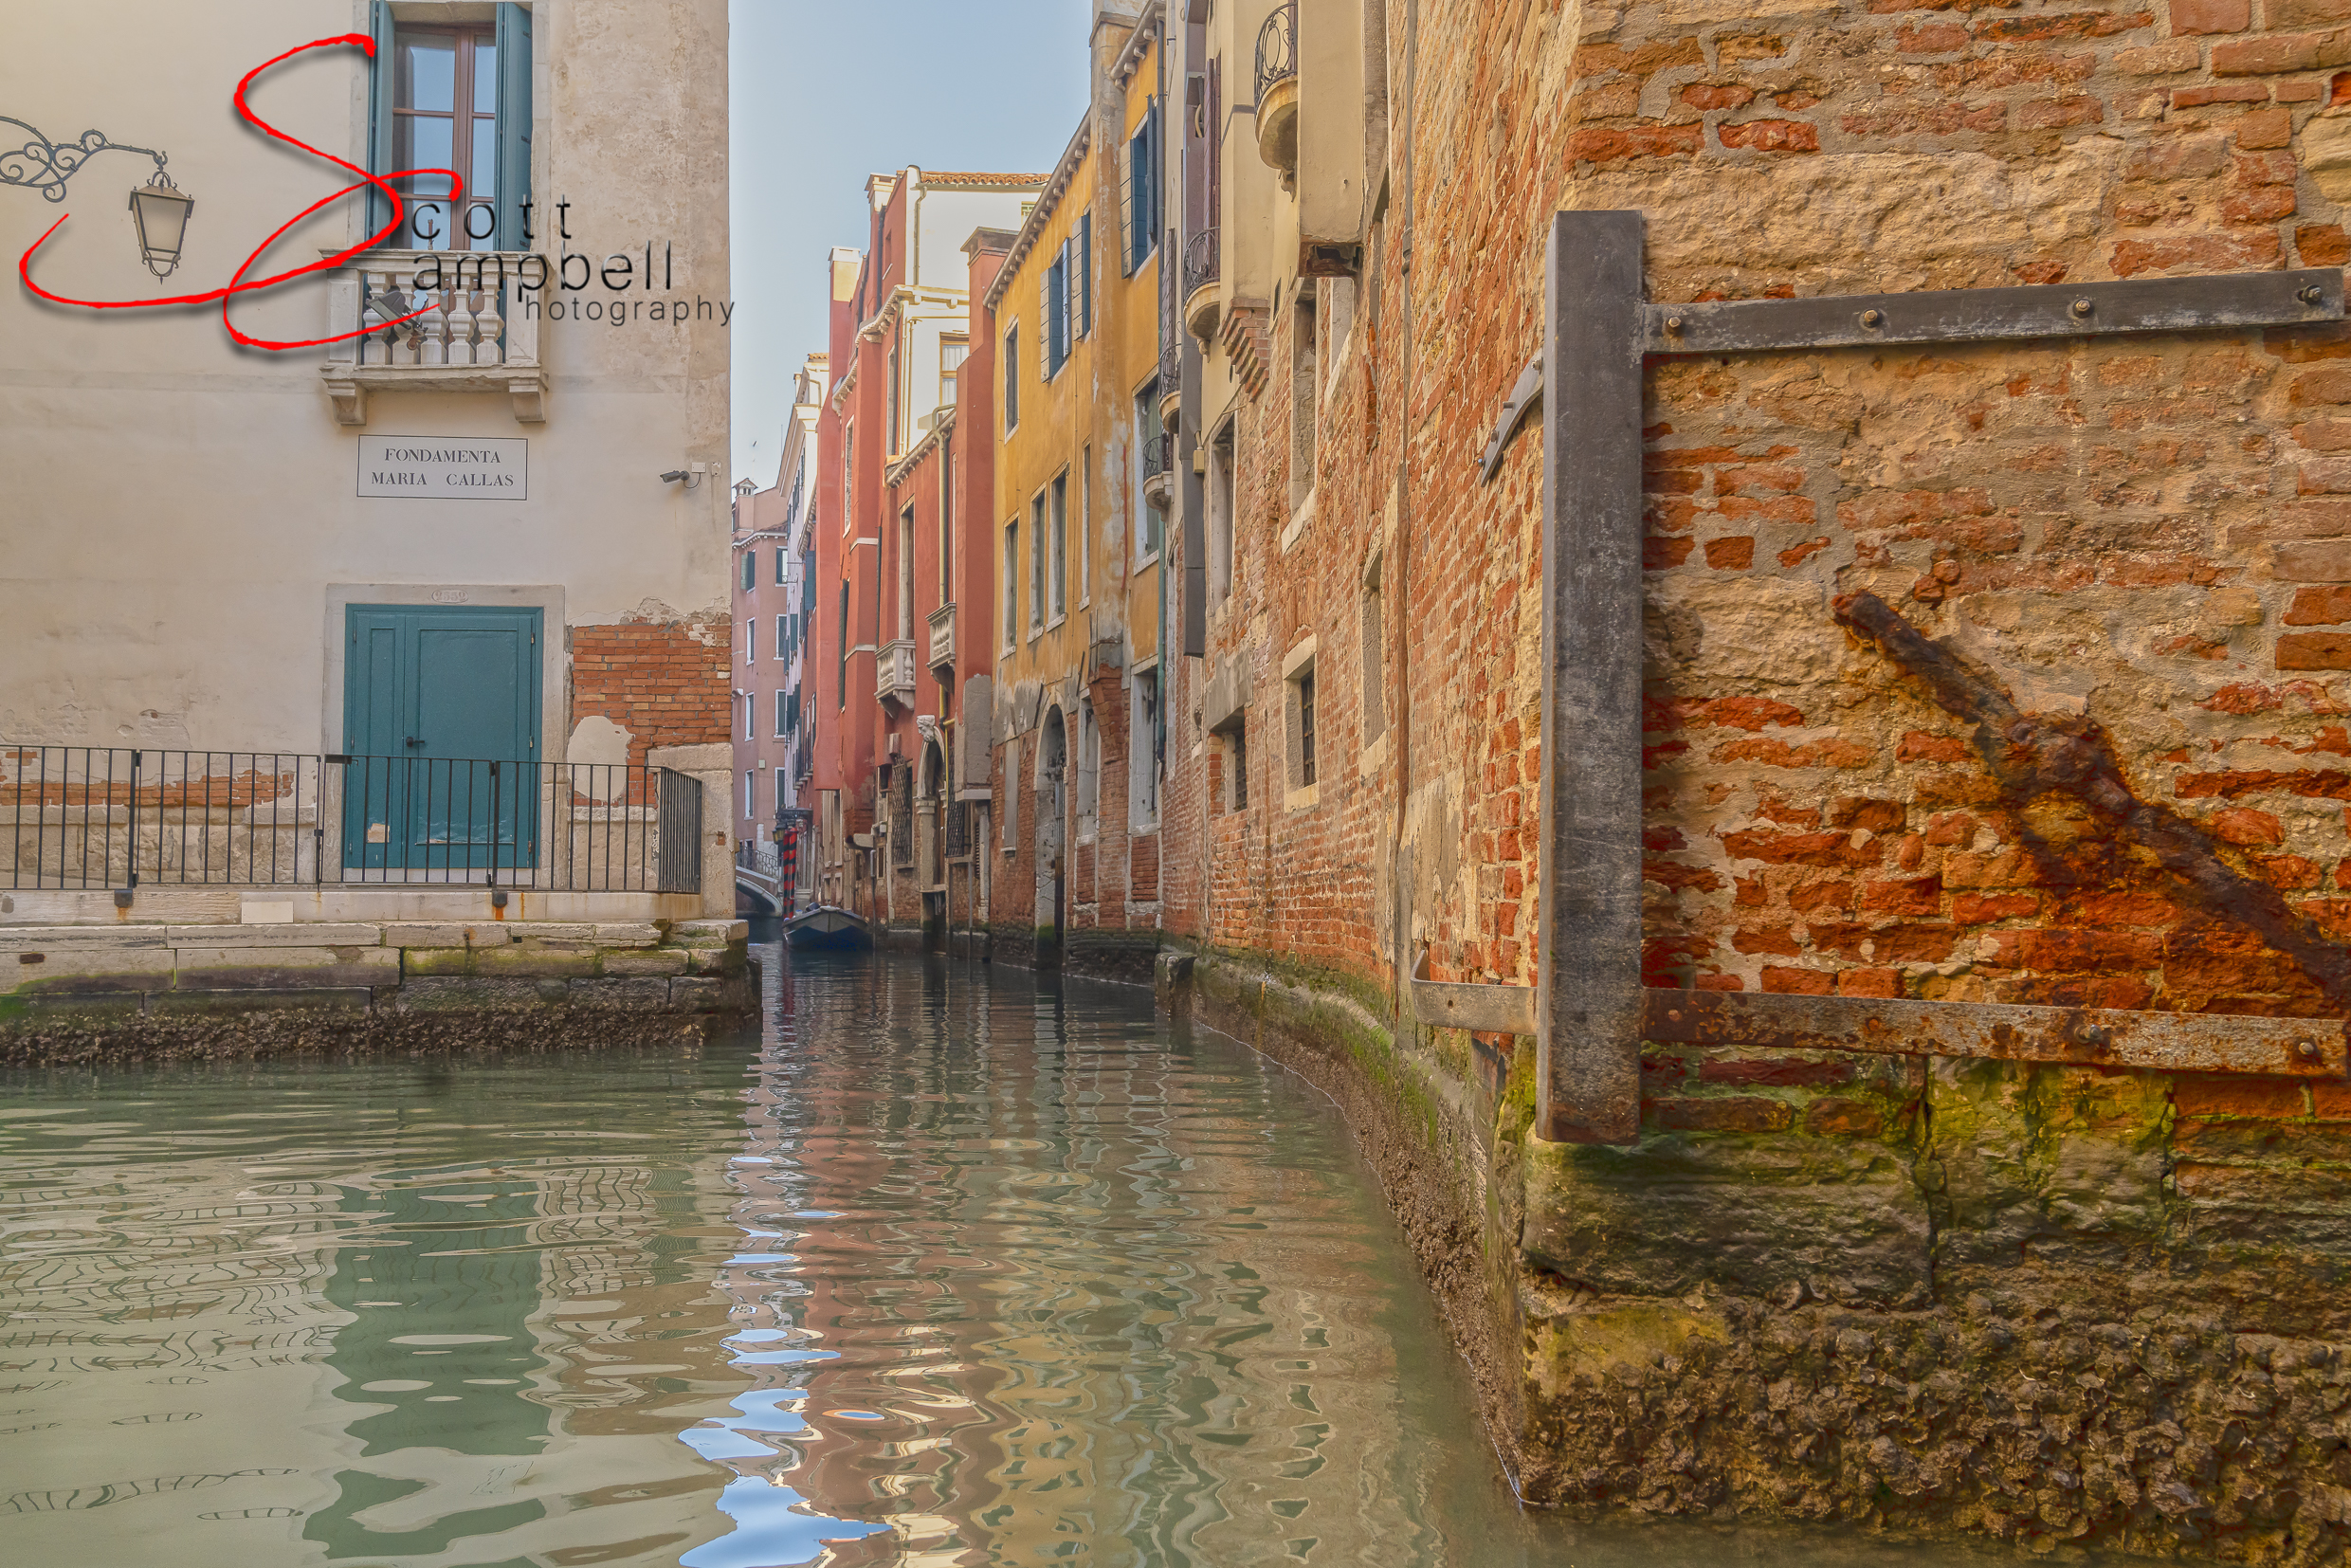 One of the many beautiful canals and ancient Venice buildings.